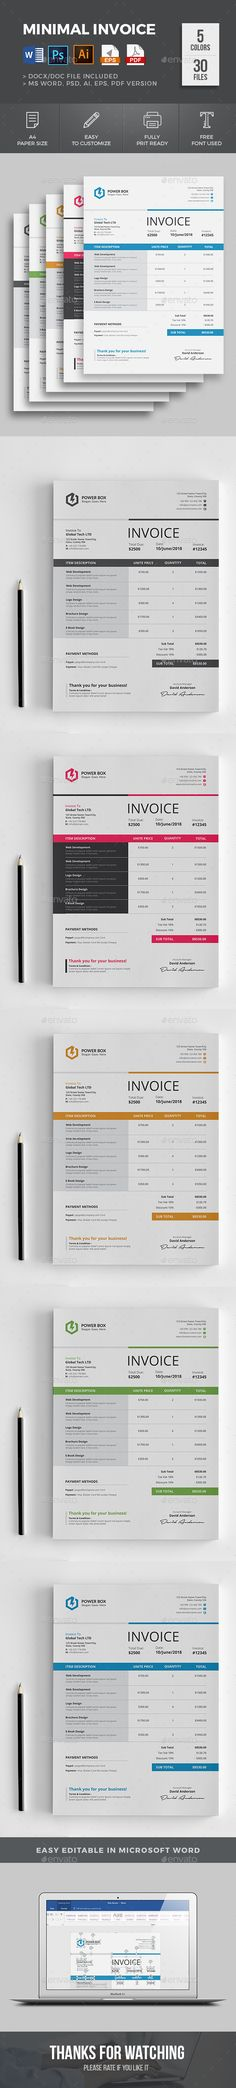 Invoice Design 50 Examples To Inspire You People, Layouts and - microsoft invoices